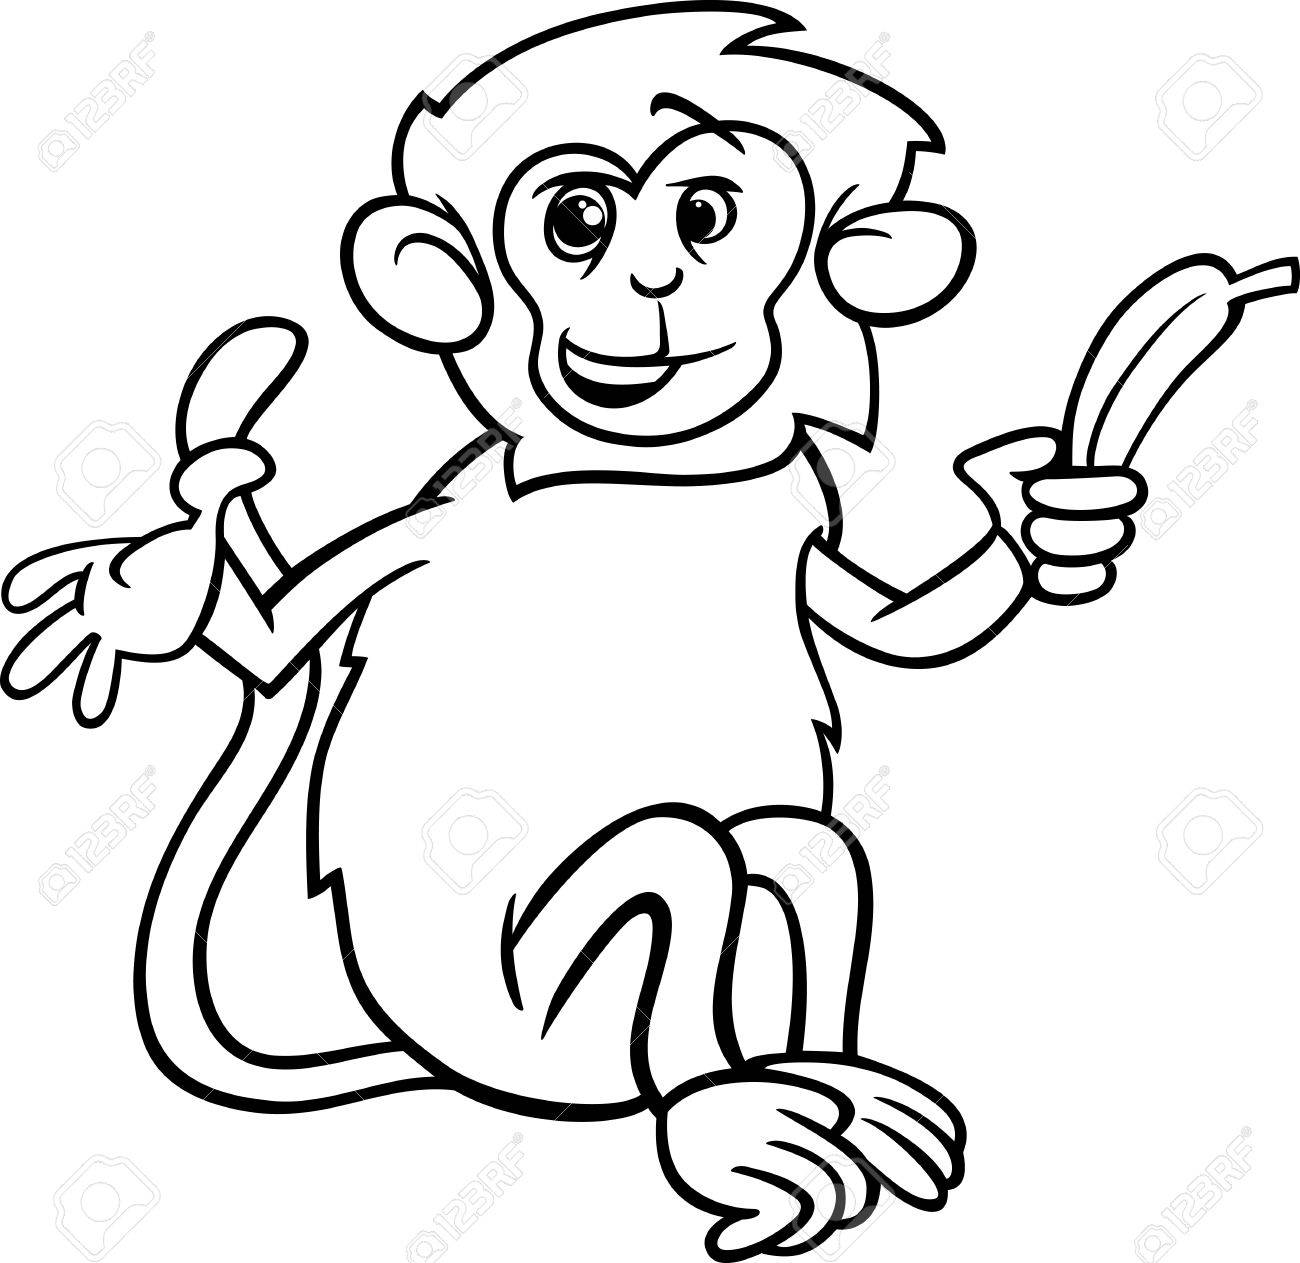 Black And White Cartoon Illustration Of Cute Monkey With Banana For Coloring Book Stock Vector